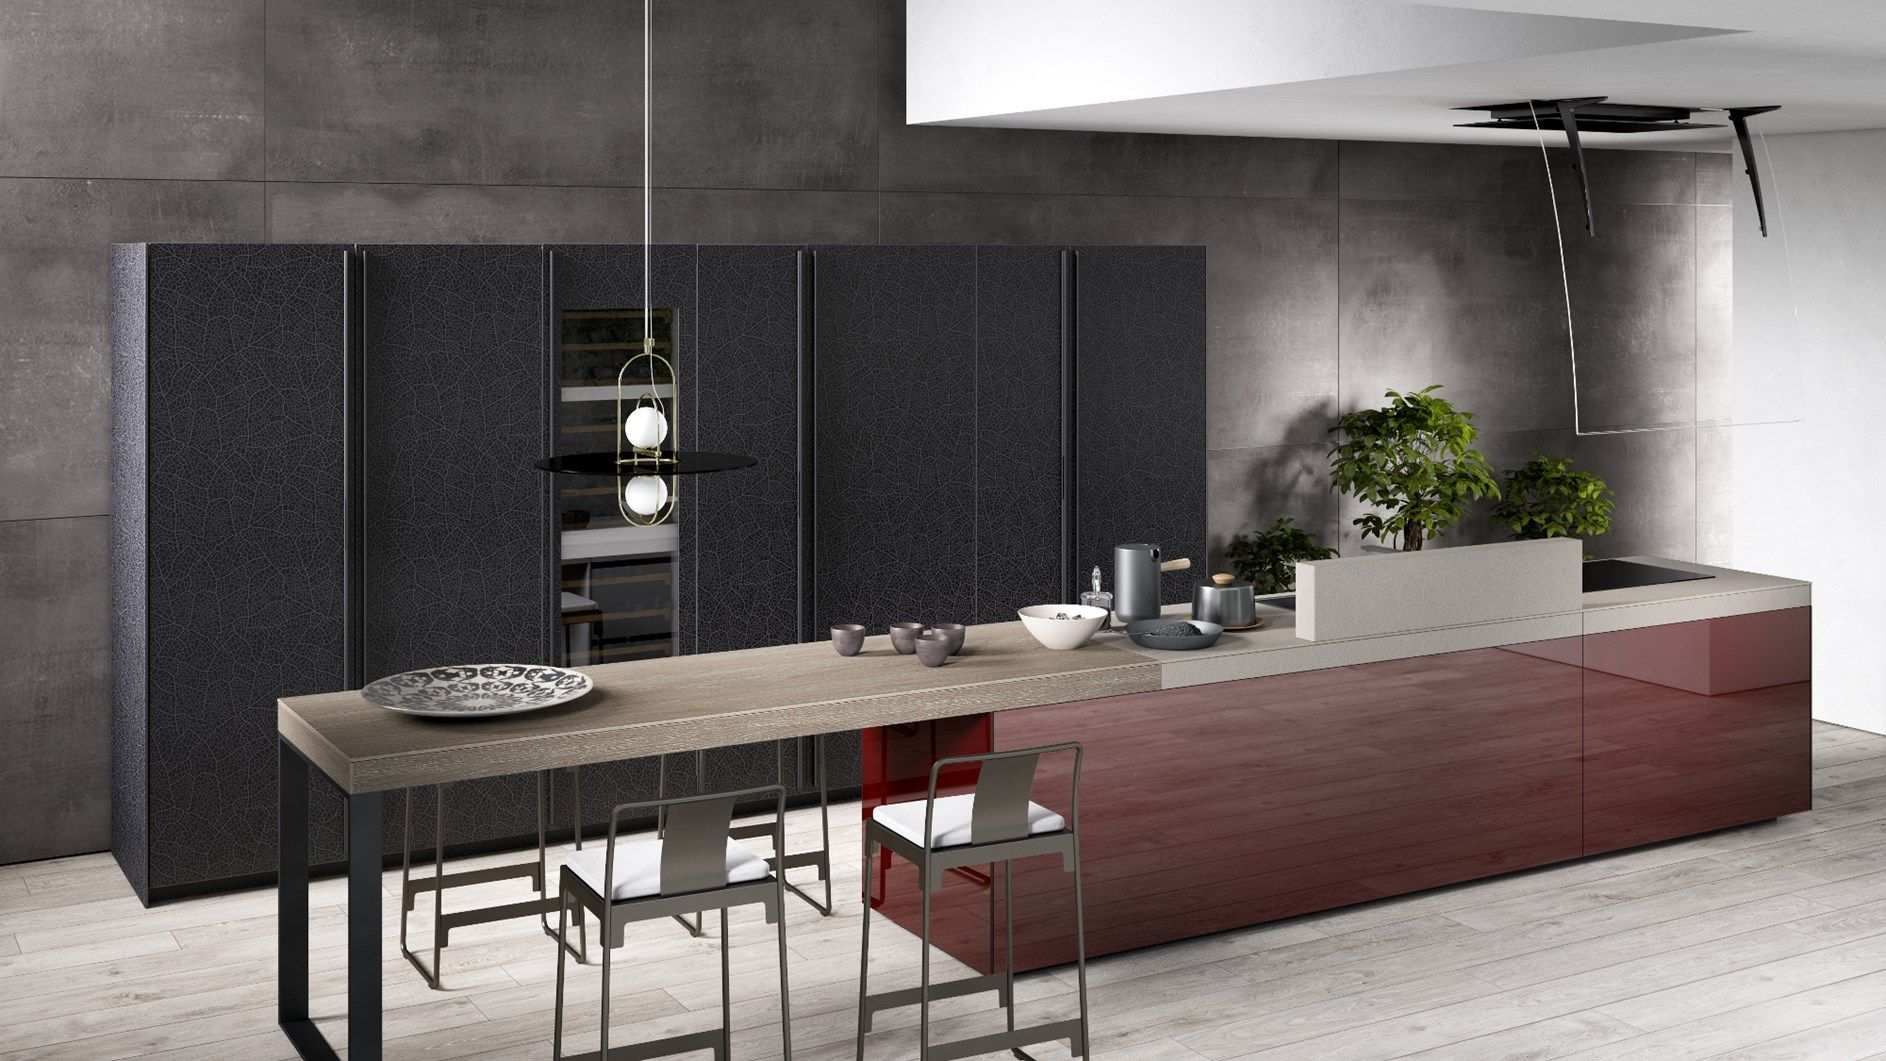 Configurador De Cocinas Valcucine Genius And Customisation The New Home Bar And The